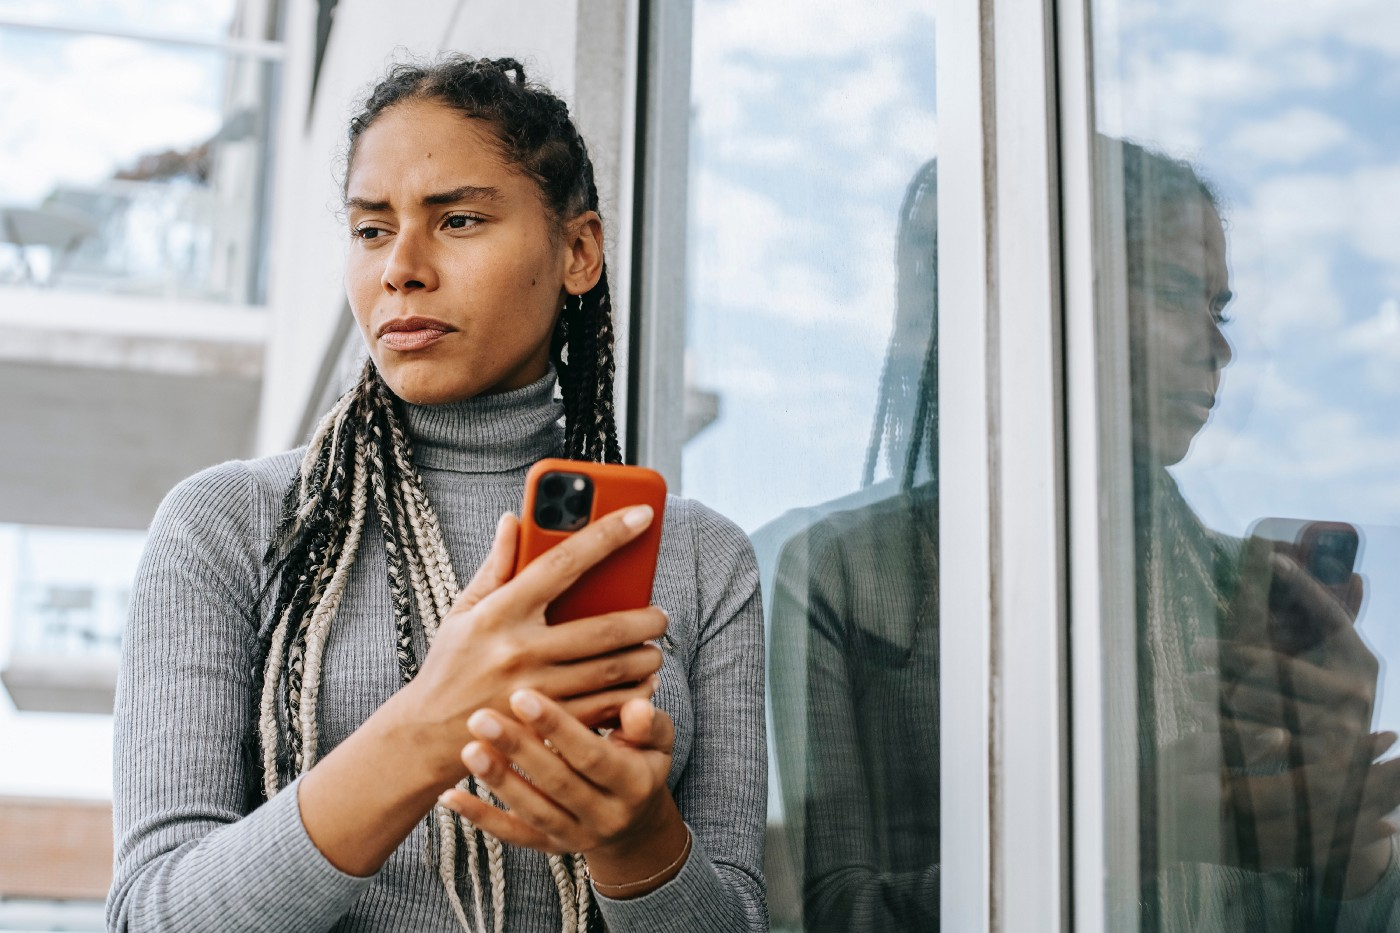 Photograph of a young Black woman with long dreadlocks wearing a gray turtleneck. She stands outside holding her phone, looking to the side, thinking.